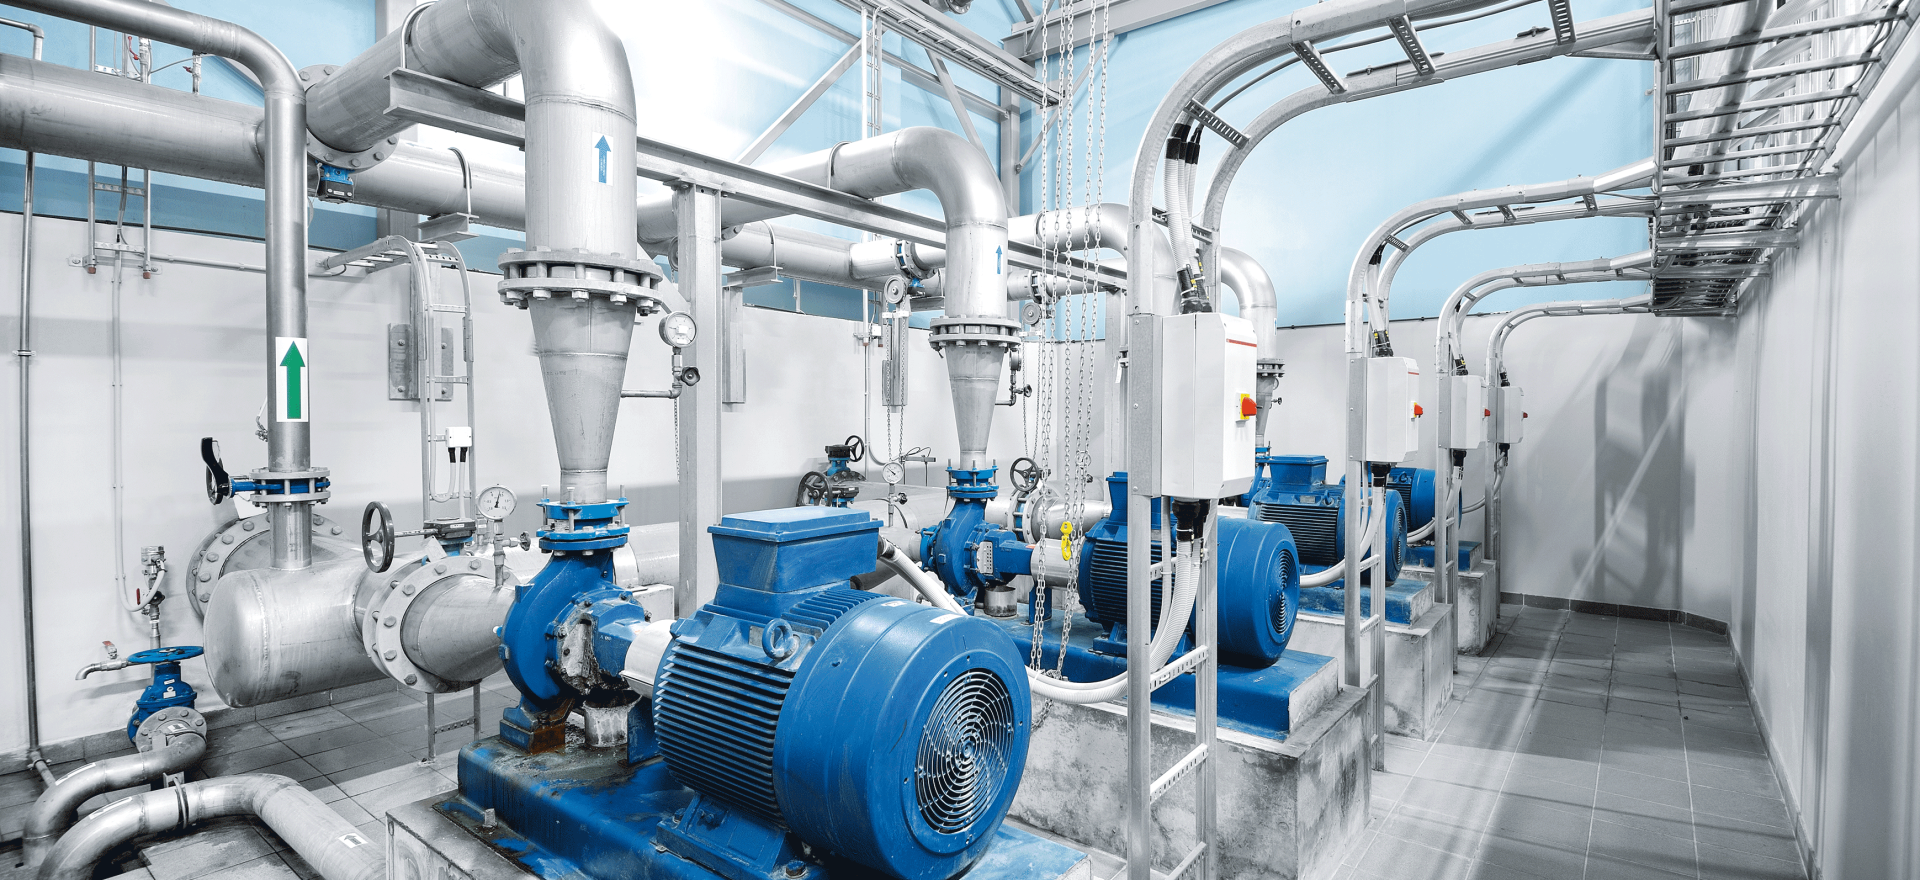 Learning solutions for maintenance, machines and mechanical systems from Festo Didactic